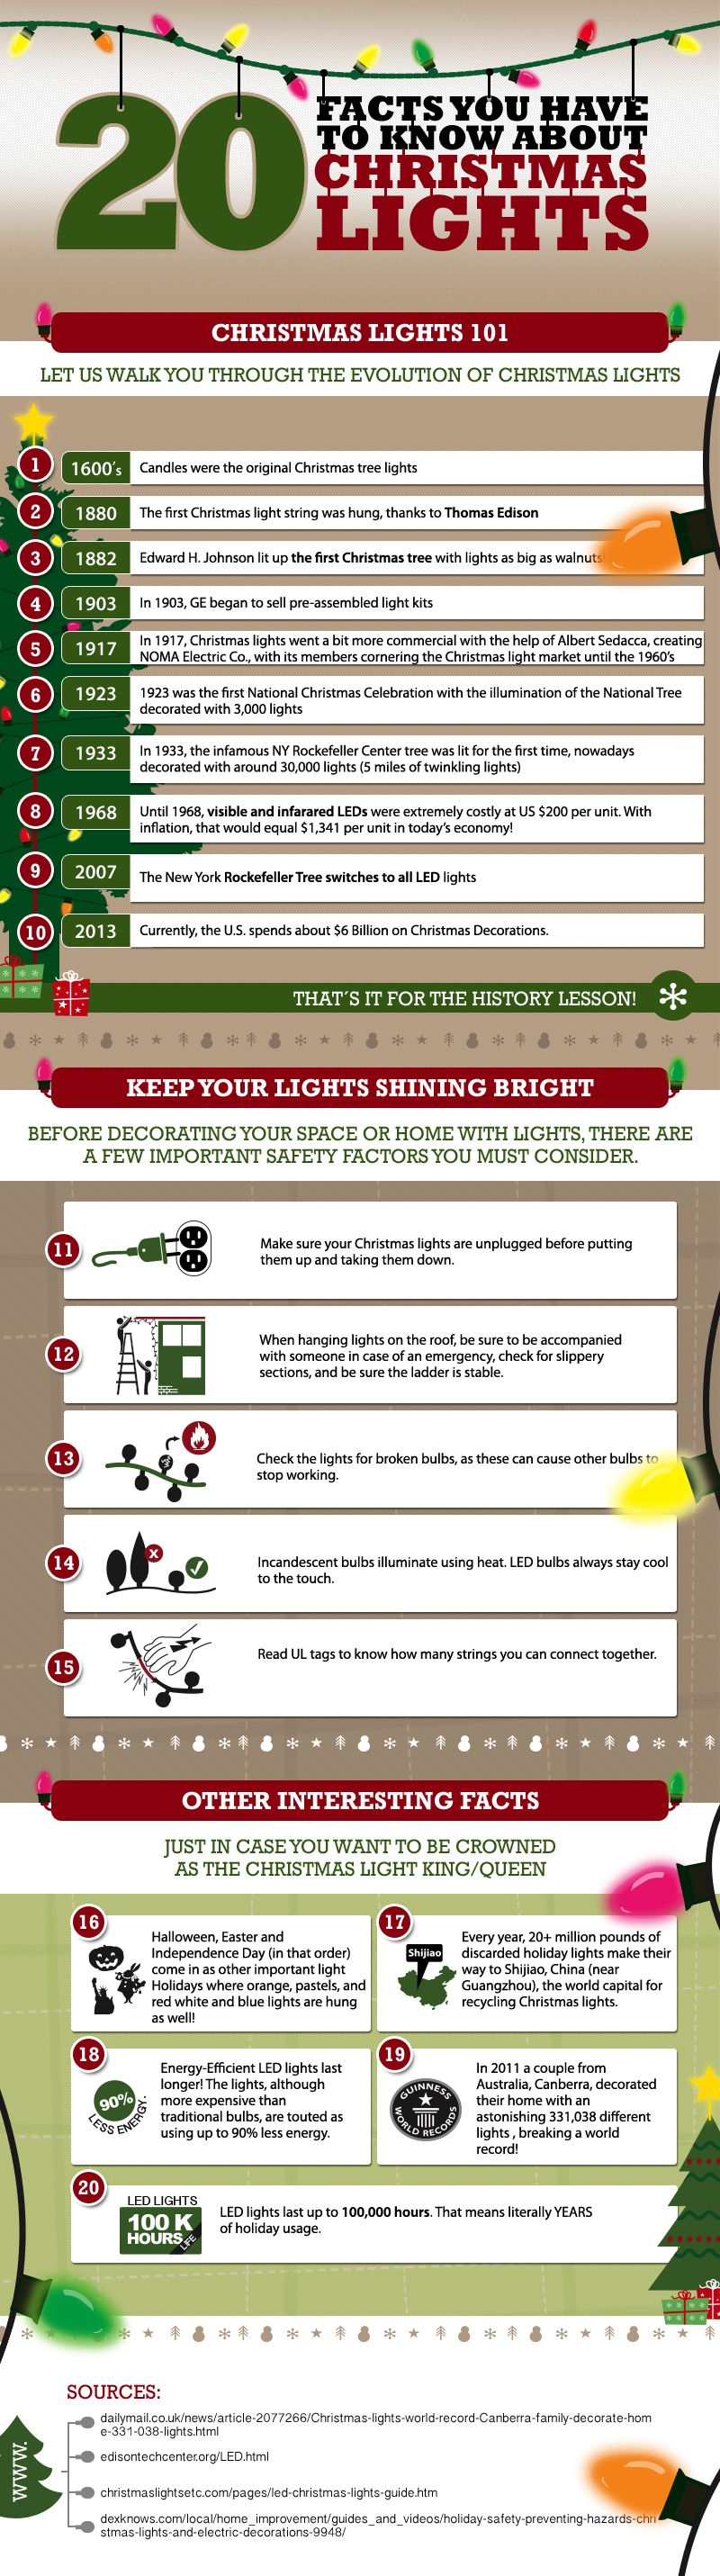 20 Facts You Have to Know About Christmas Lights | Christmas Cheer ...